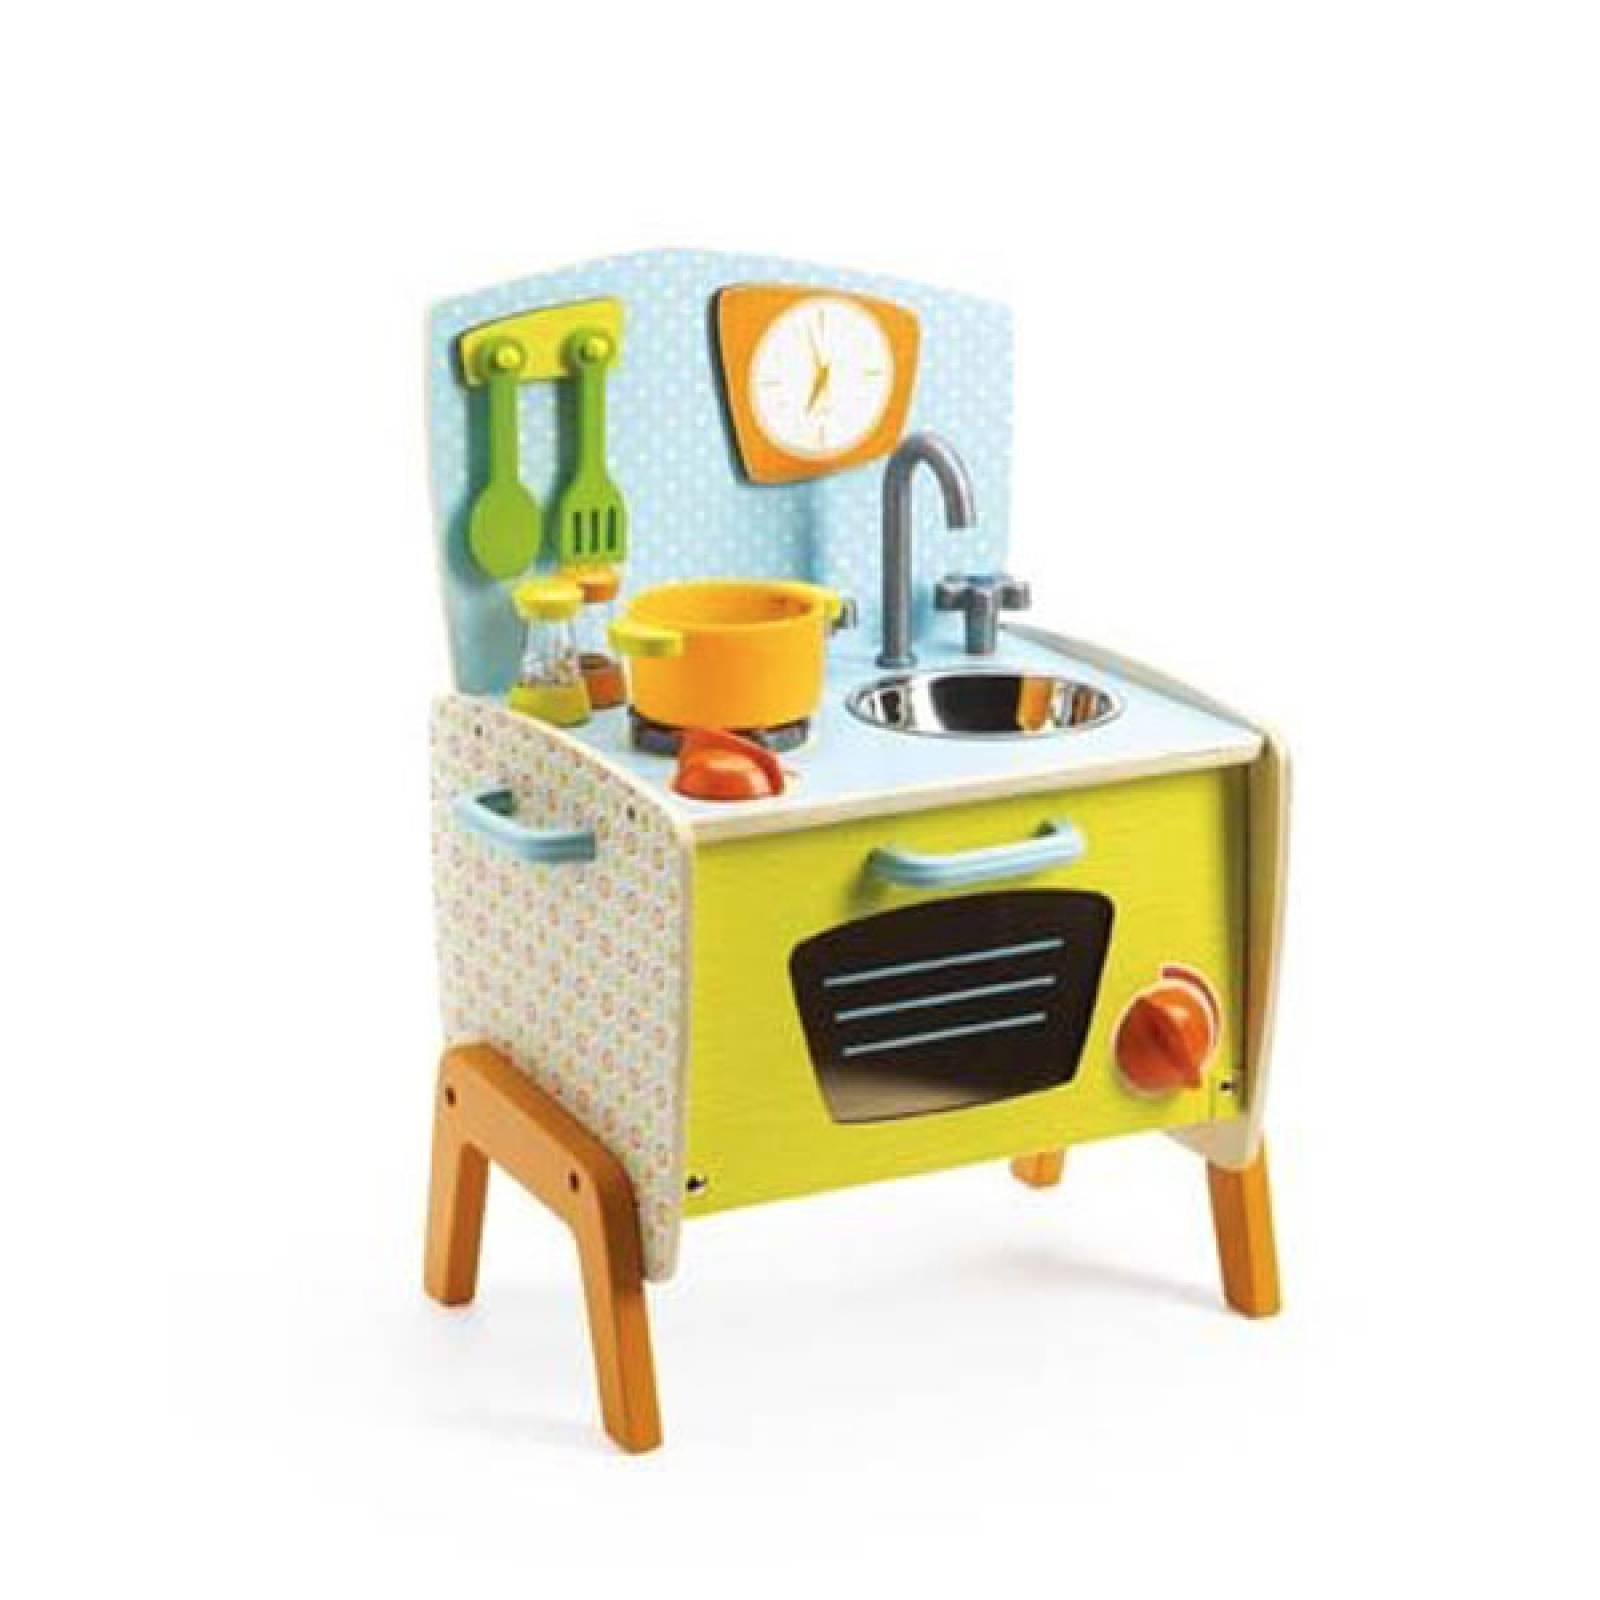 Gaby's Cooker Toy Cooker By Djeco 4+ thumbnails